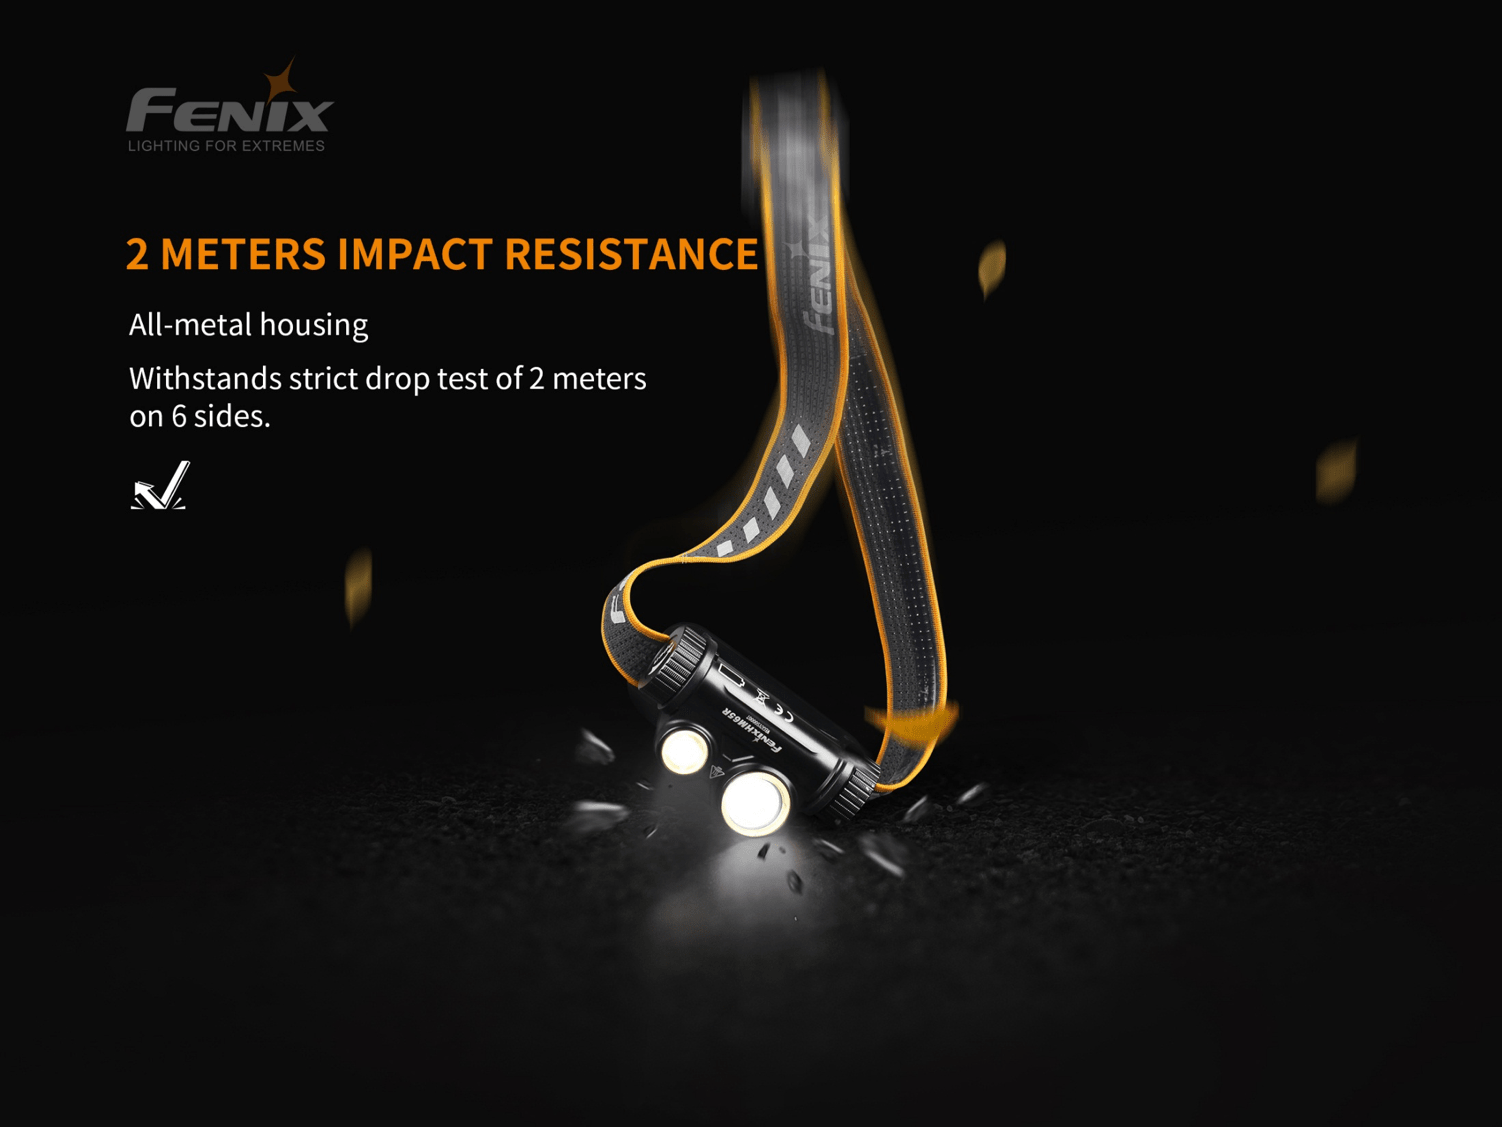 Fenix HM65R 1400 Lumens White & Neutral White LED Headlamp, Heavy Duty Work Powerful Helmet Mounted Headlamp